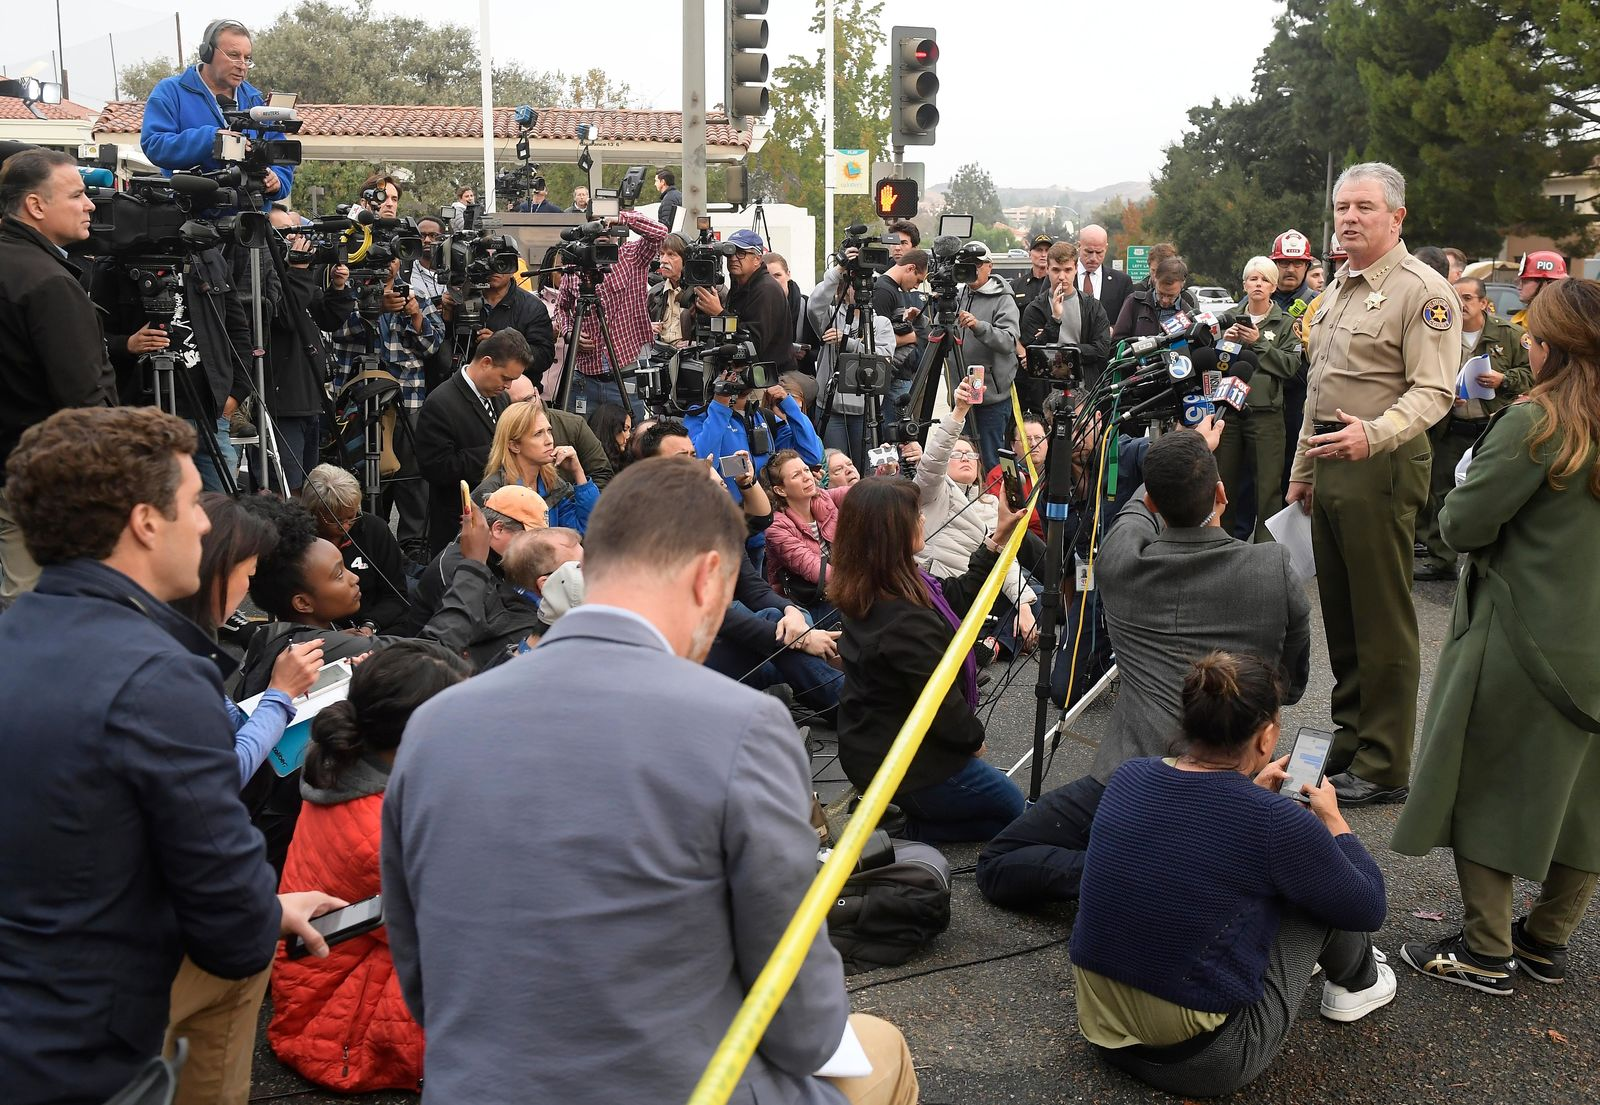 Ventura County Sheriff Geoff Dean speaks to reporters near the scene in Thousand Oaks, Calif., on Thursday, Nov. 8, 2018, where a gunman opened fire the previous night inside a country dance bar crowded with hundreds of people. Officials say the suspect is dead inside the bar. (AP Photo/Mark J. Terrill)